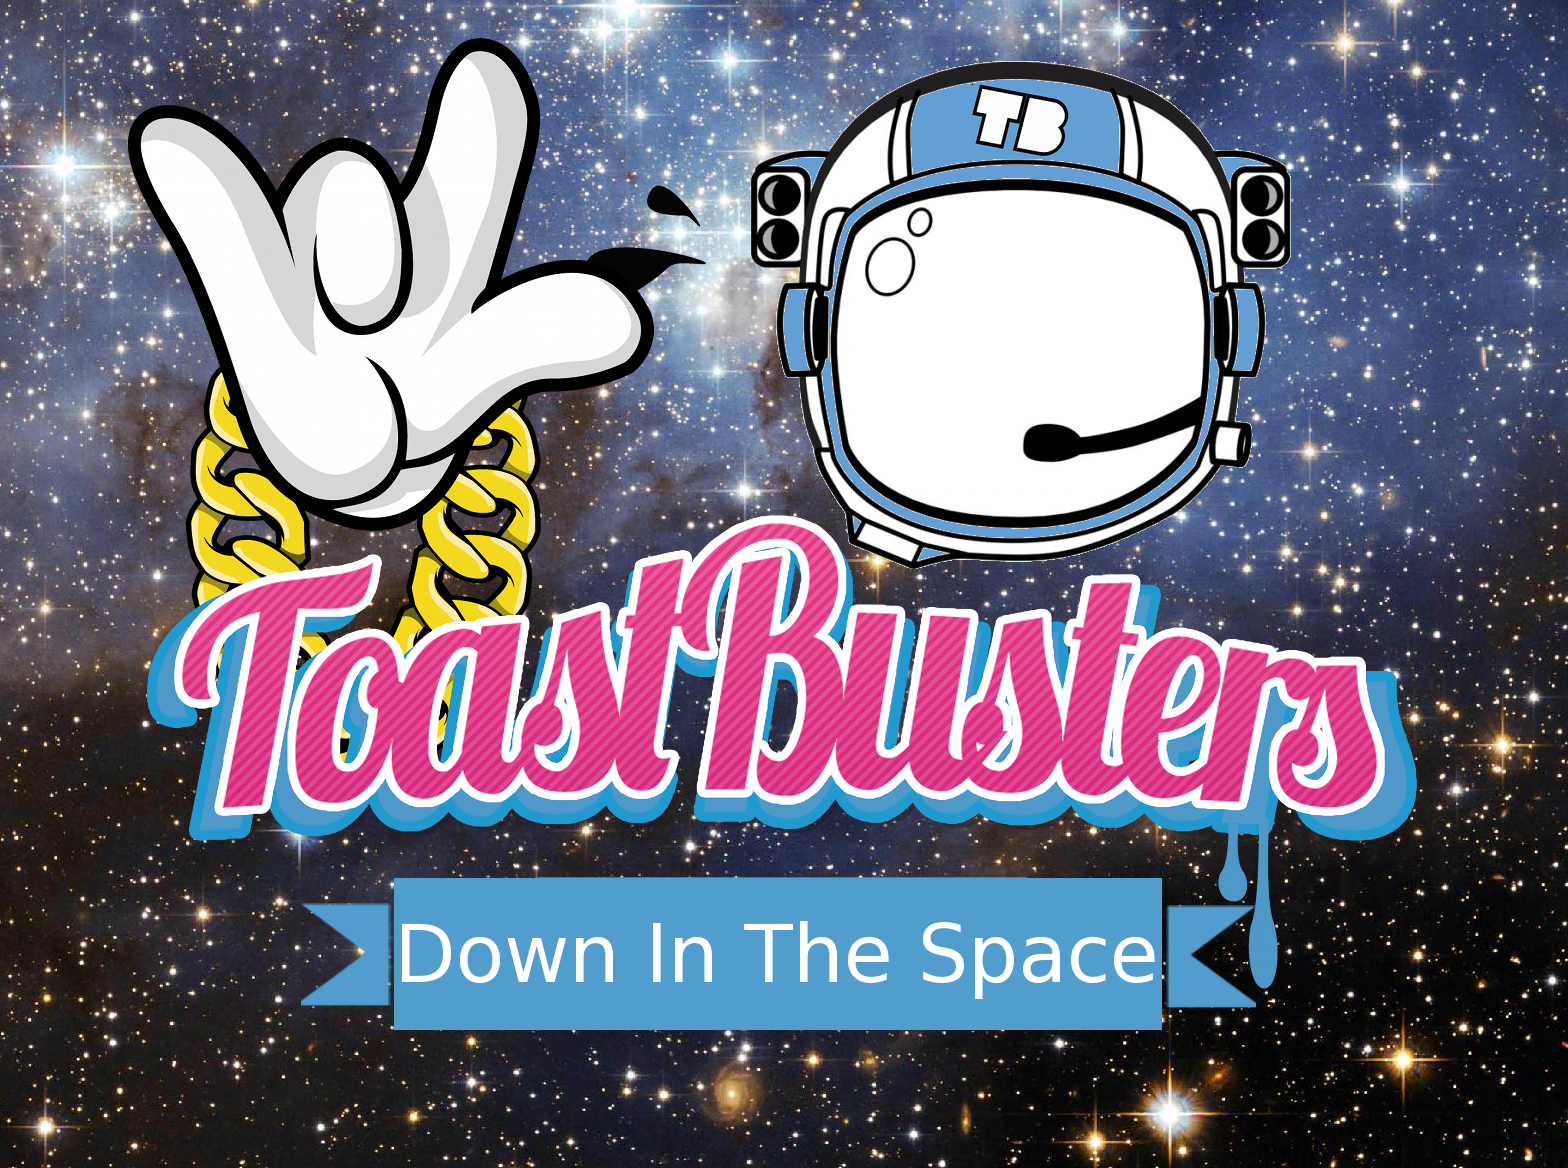 Down in the Space (CCR vs Beastie Boys) Mashup – By Toastbusters